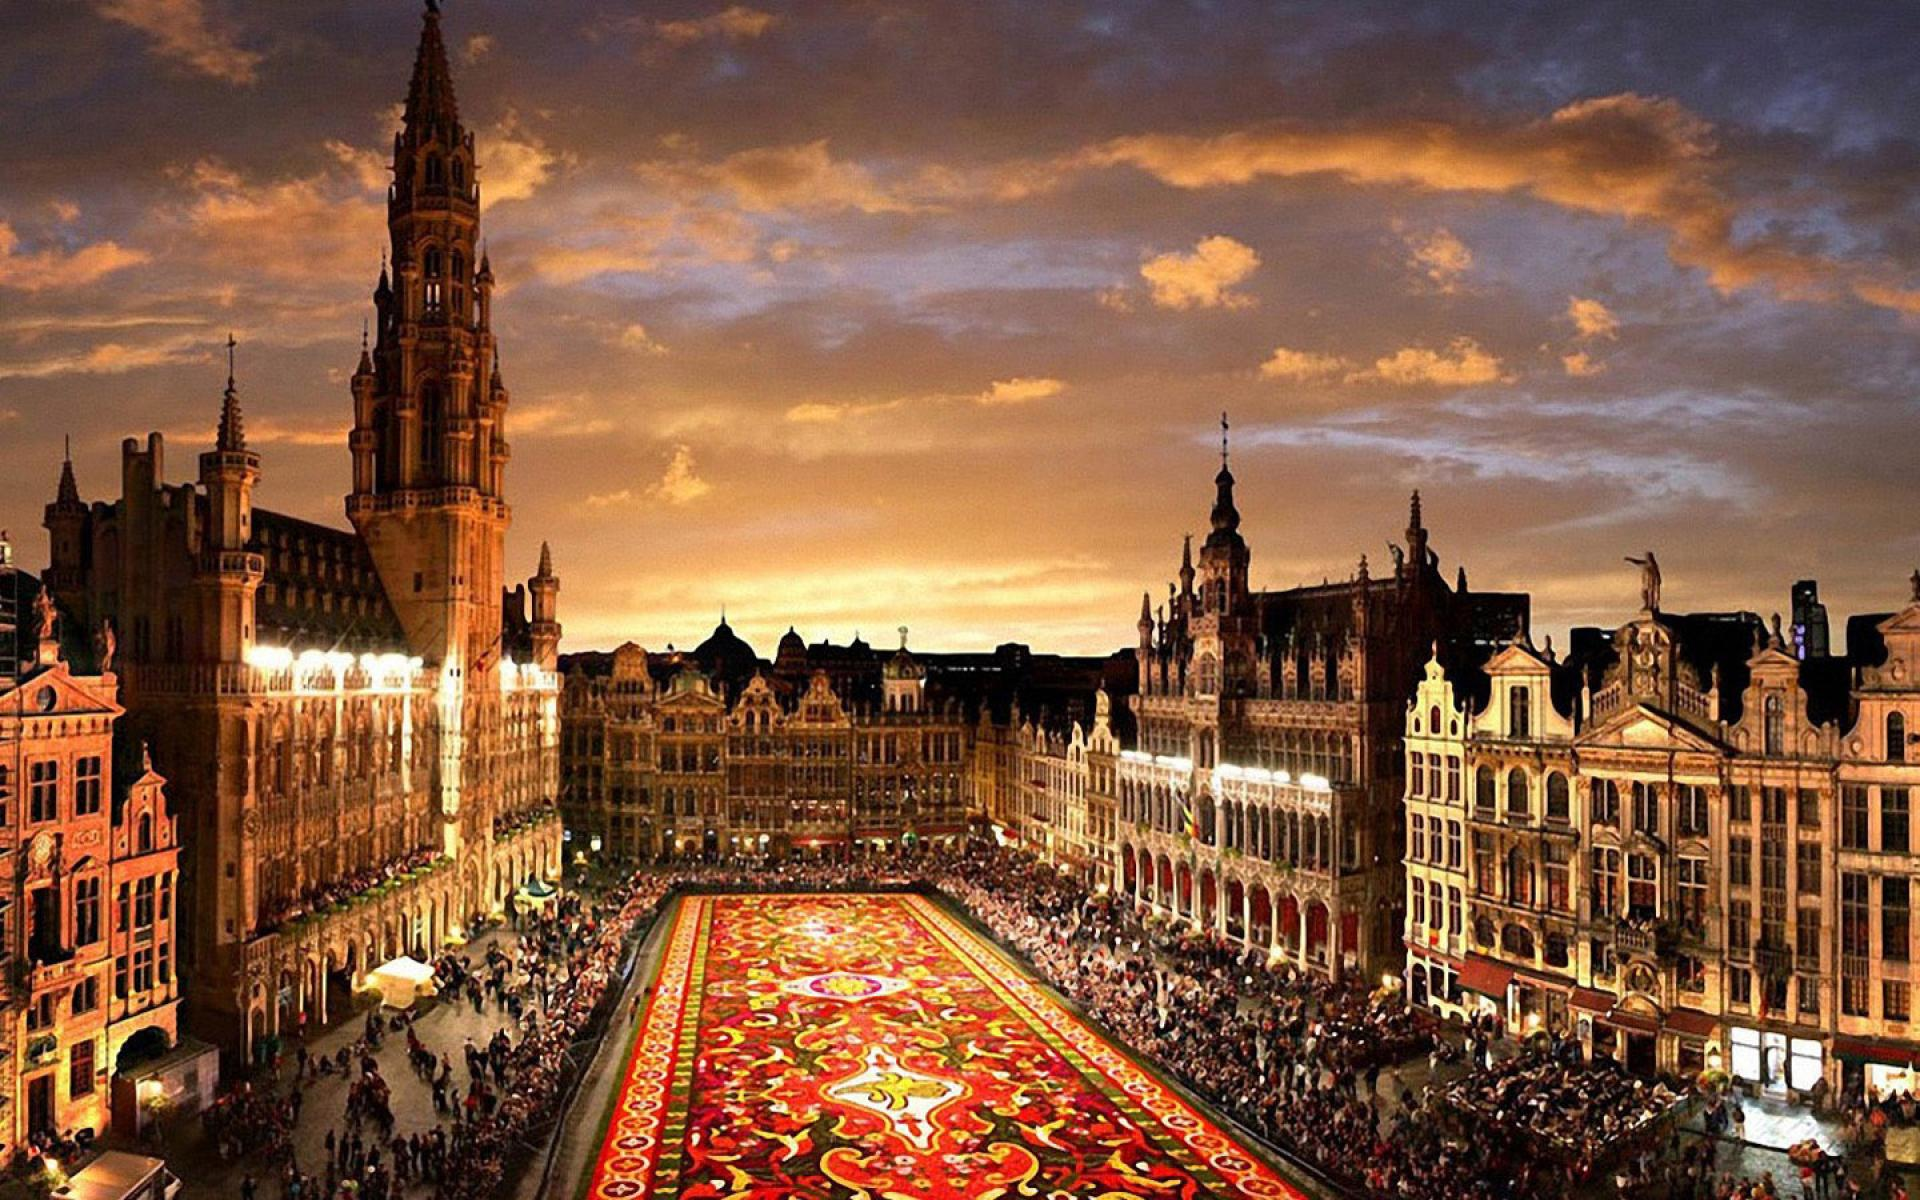 Main Square in Belgium by Night 1118.11 Kb